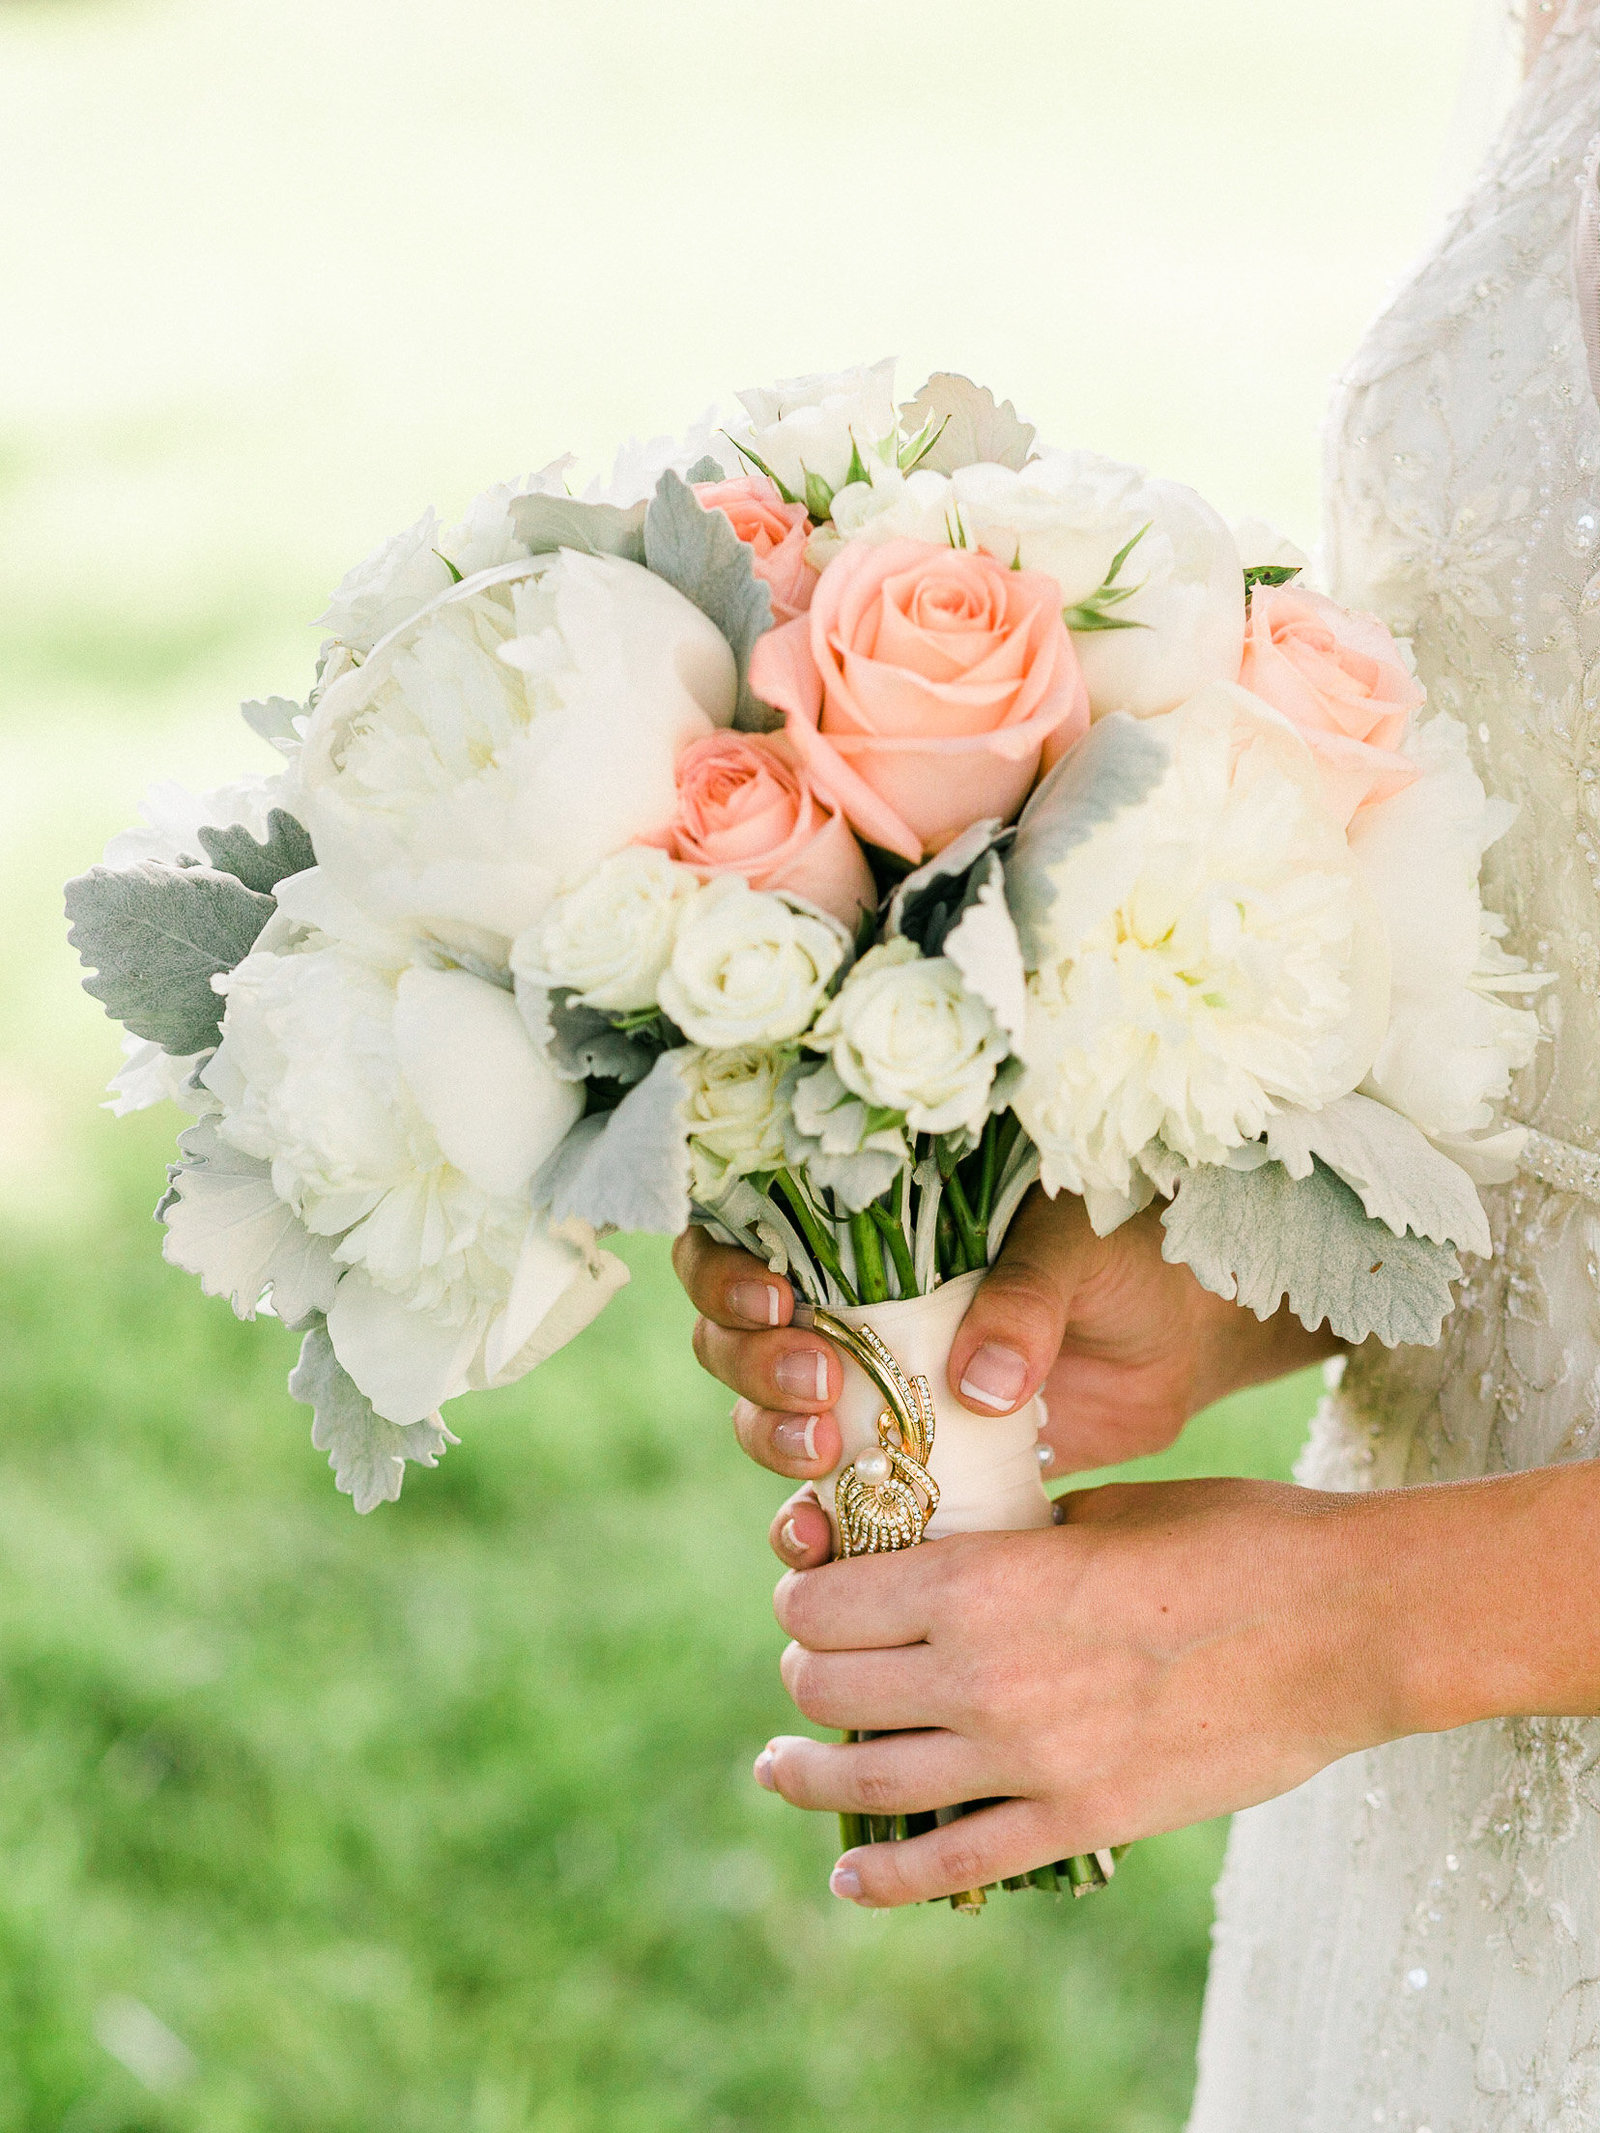 Close up of the bridal bouquet that has an heirloom broach pinned to it